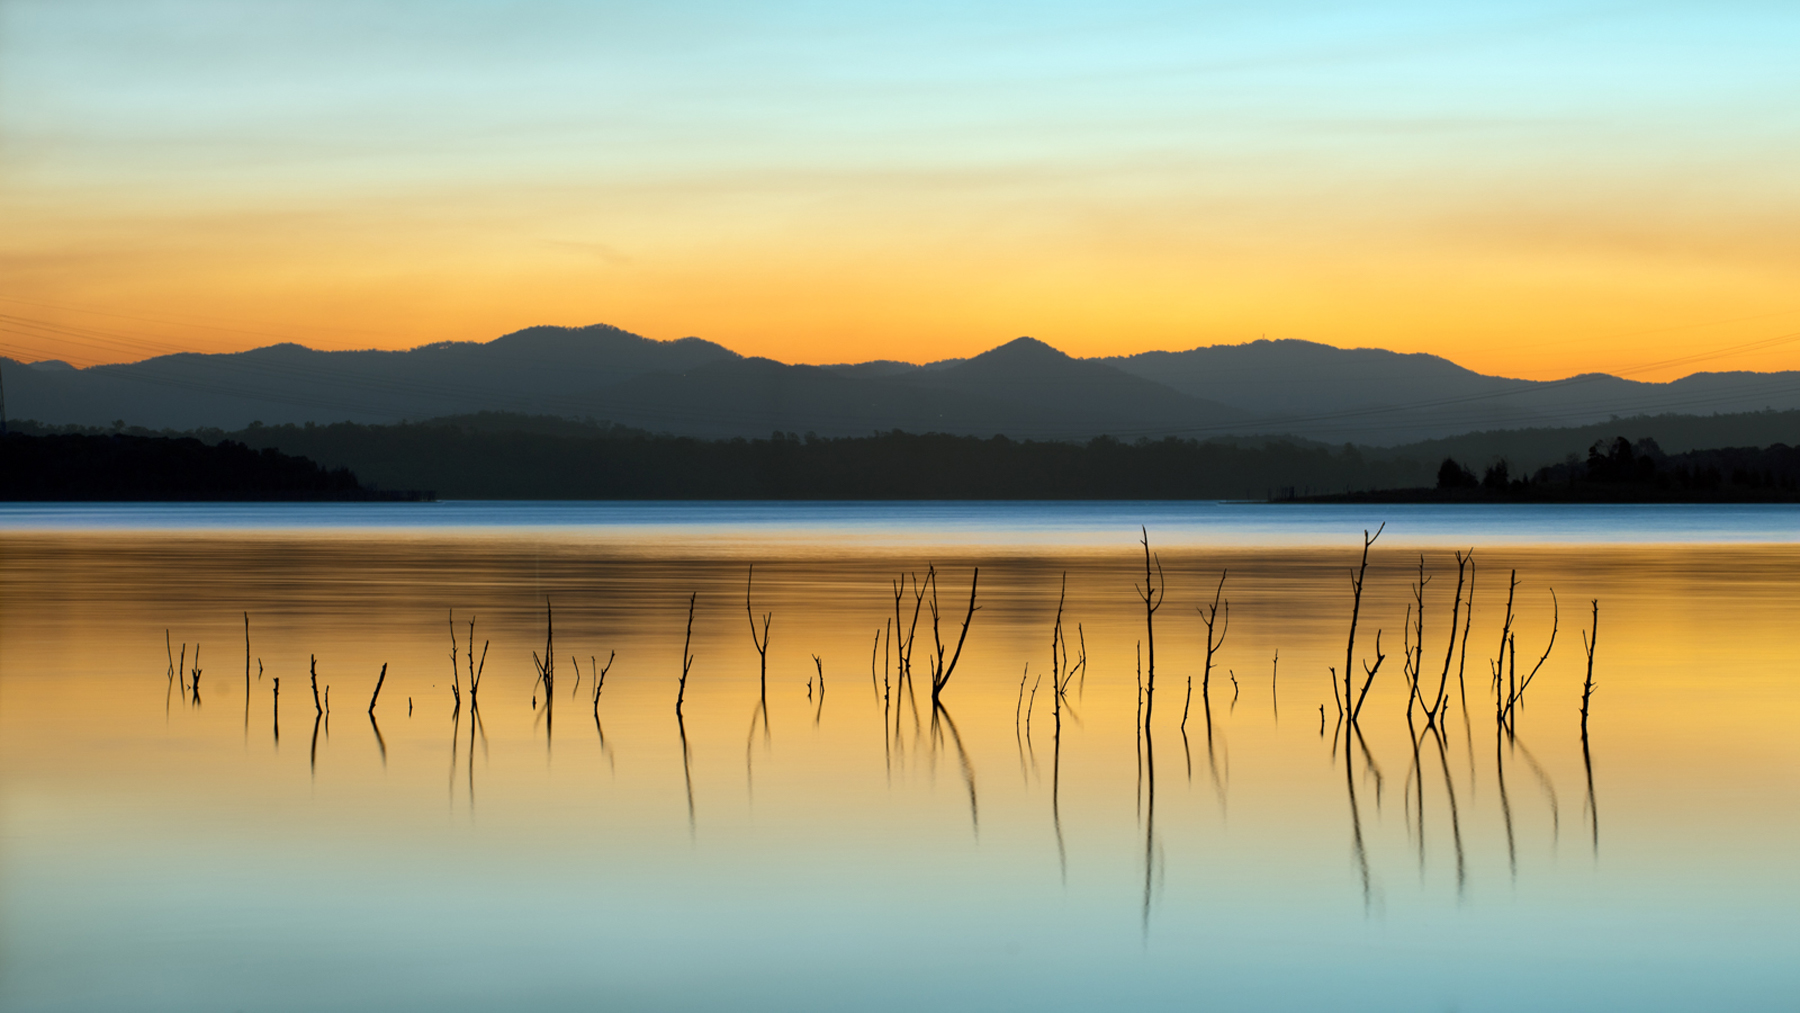 Lake Sticks by Shane Spoor